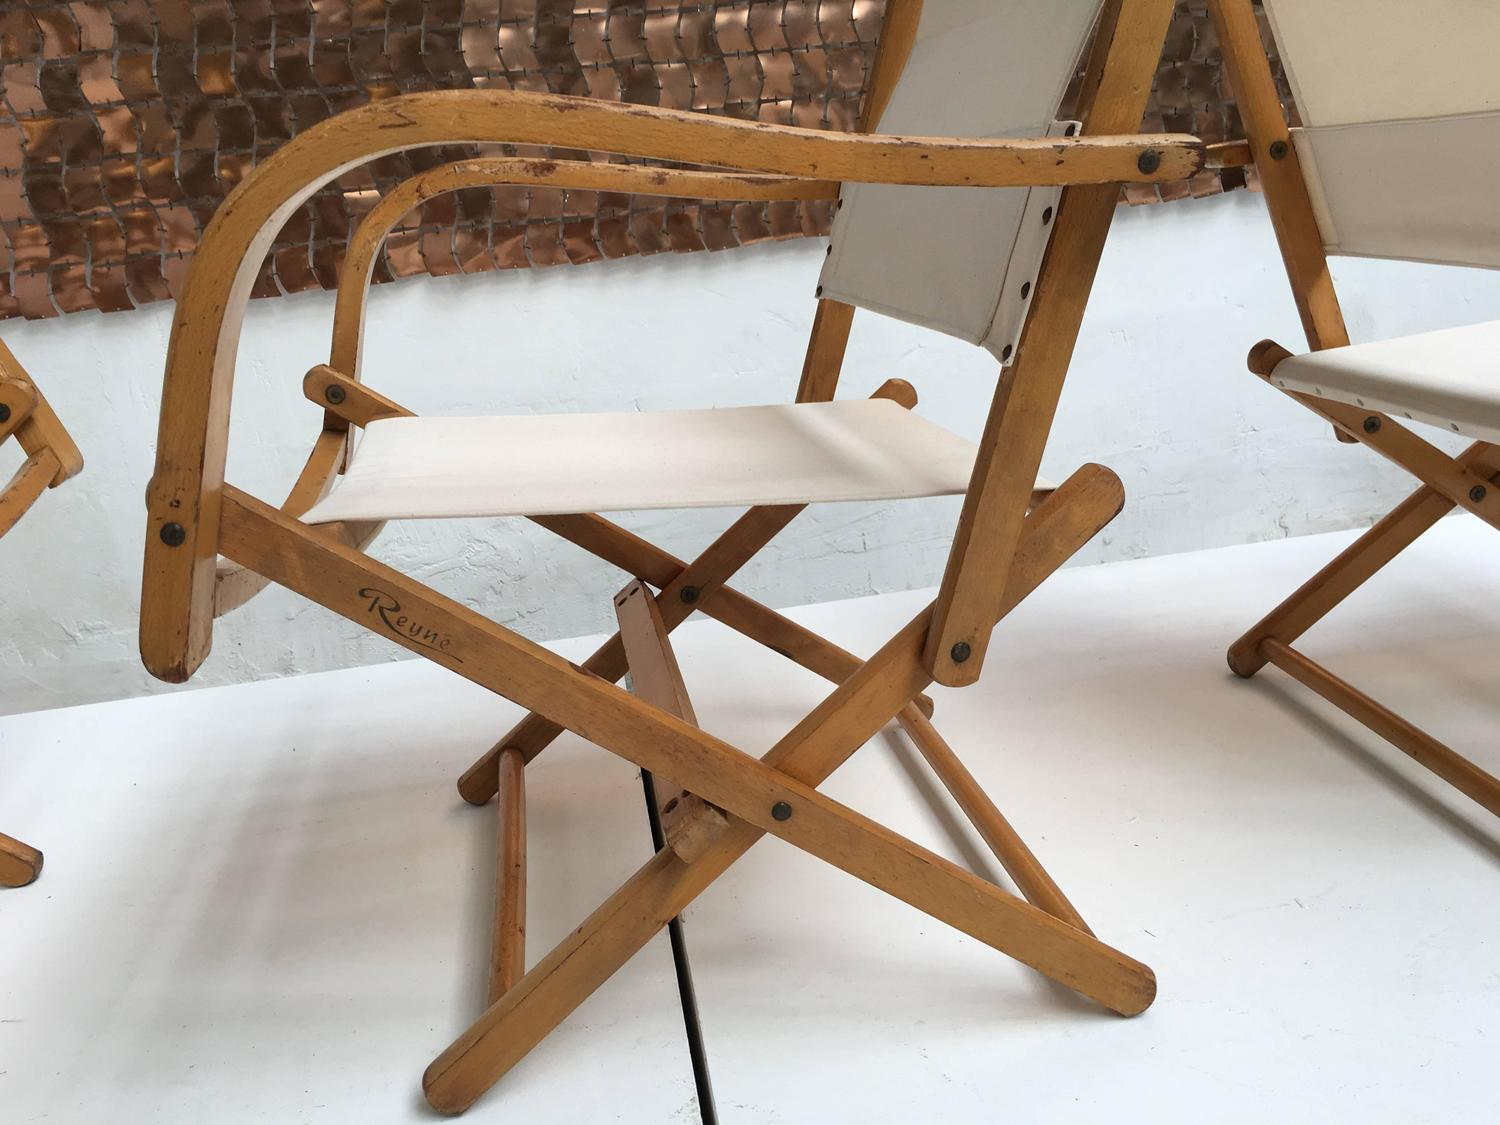 Four Birch And Canvas Foldable Garden Chairs By Reyne The